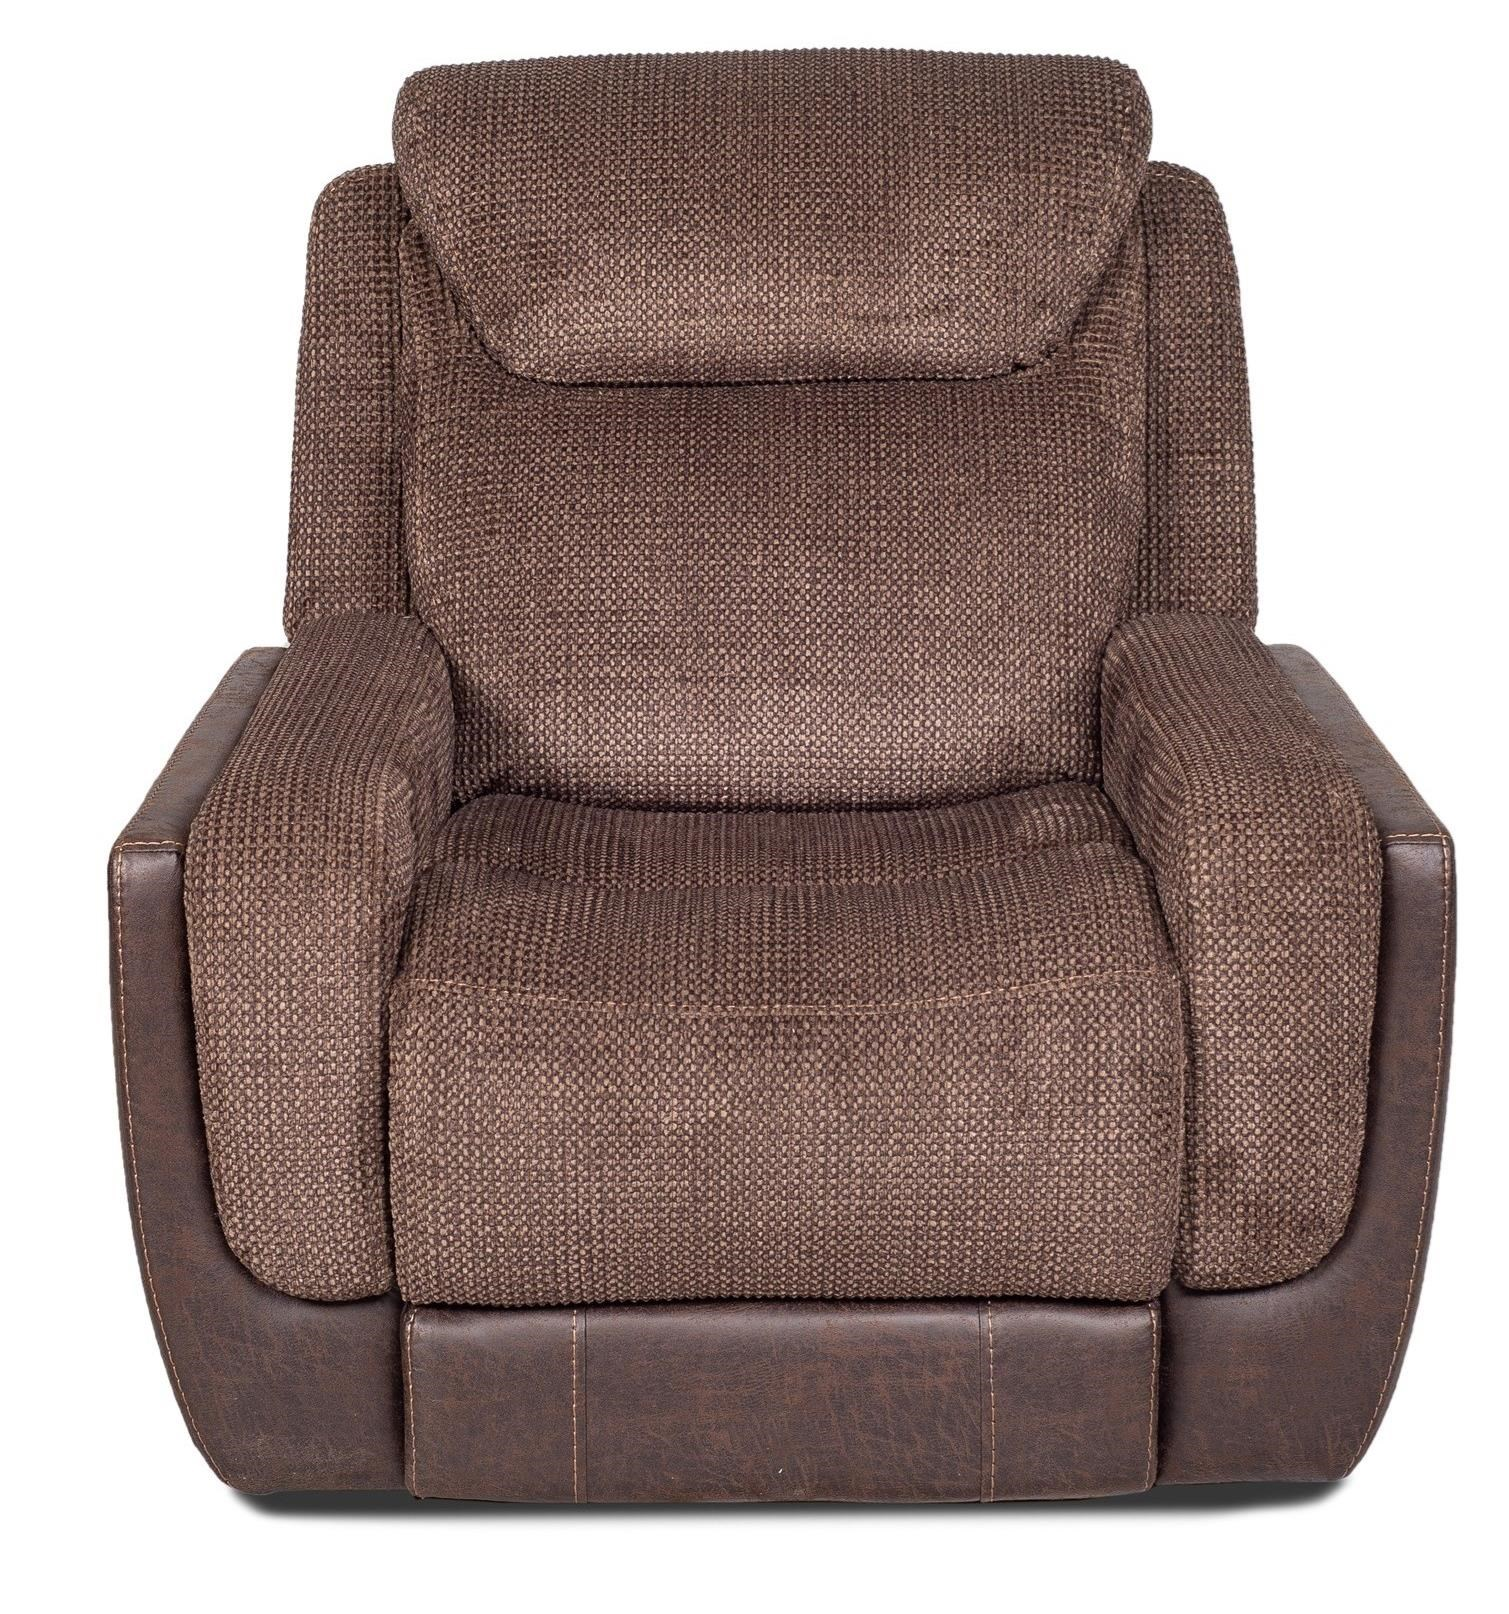 1815 Reclining Chair by Synergy Home Furnishings at Stoney Creek Furniture